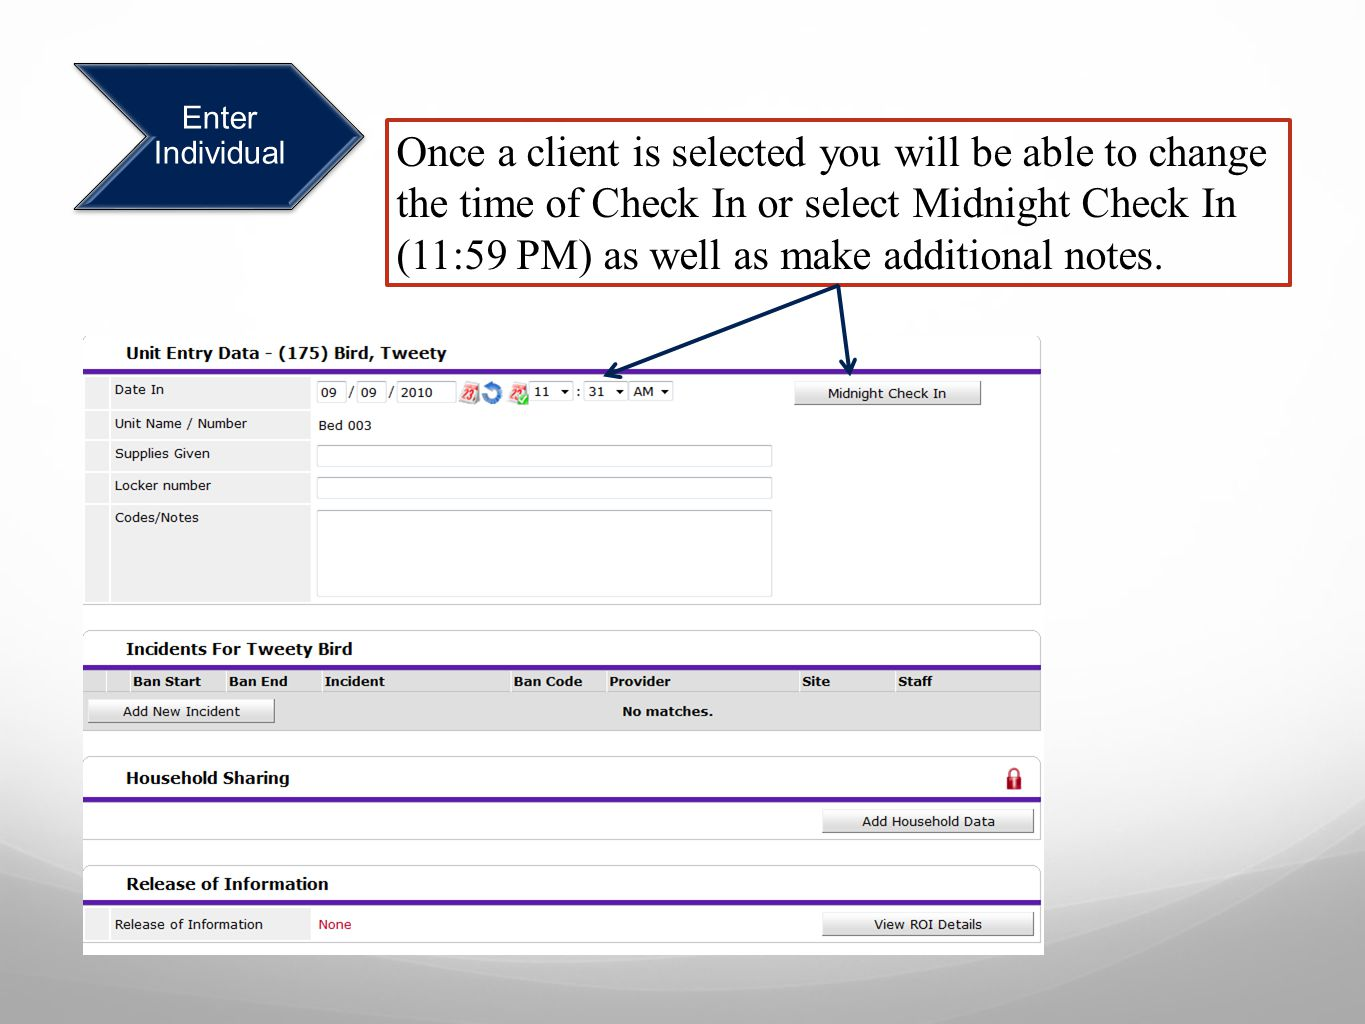 Enter Individual Once a client is selected you will be able to change the time of Check In or select Midnight Check In (11:59 PM) as well as make additional notes.